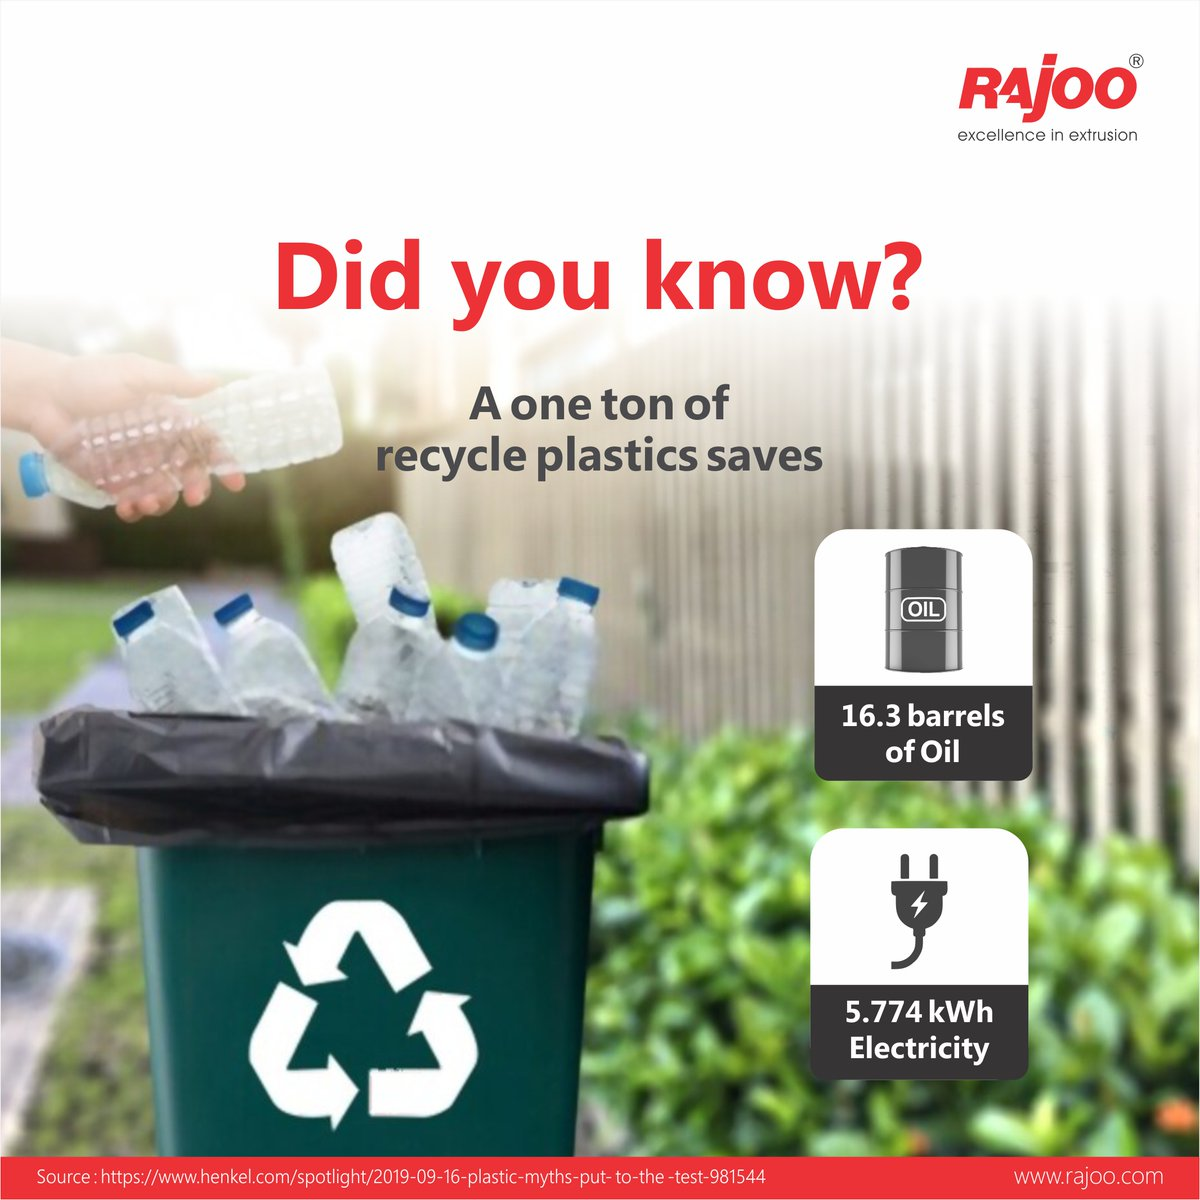 #DidYouKnow?  Recycling one ton of plastic saves 16.3 barrels of Oil and 5.774 kWh Electricity.  #BenefitsOfPlastic #RajooEngineers #Rajkot #PlasticMachinery #Machines #PlasticIndustry https://t.co/suuag5nB2s